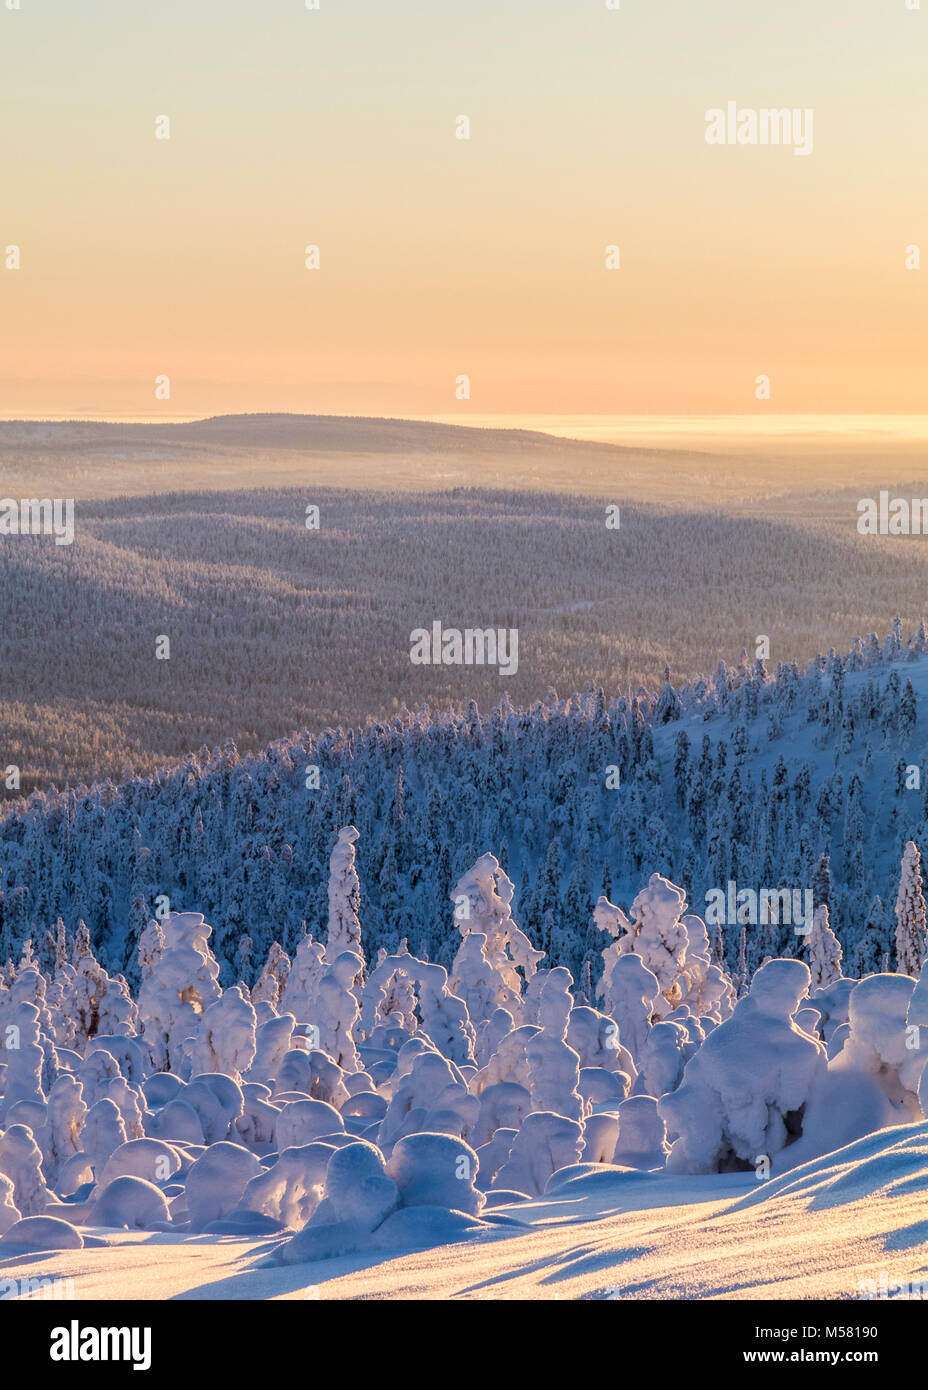 Snowy fells in Finland - Stock Image